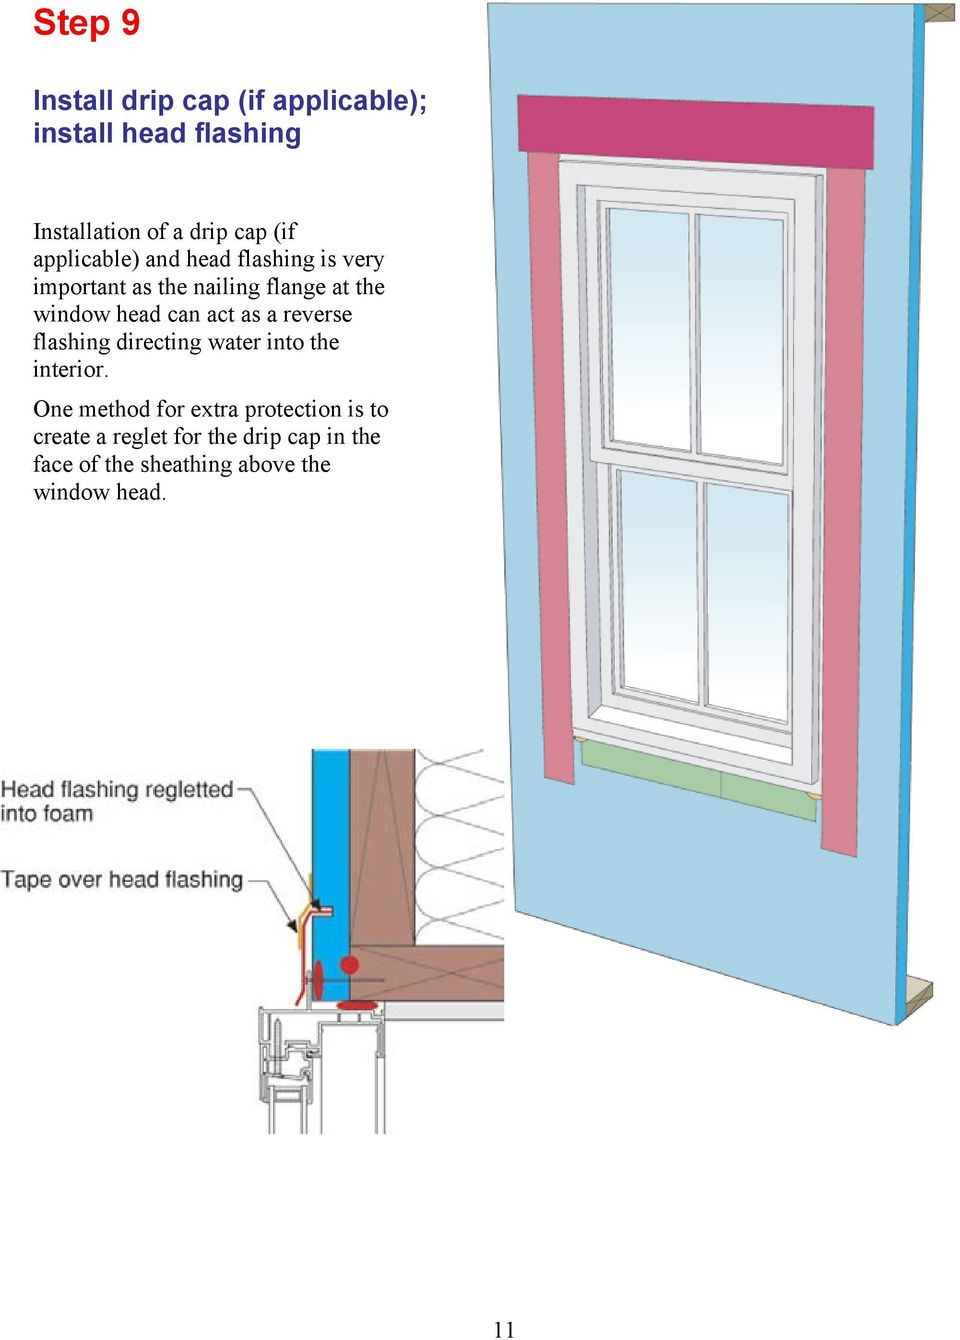 act as a reverse flashing directing water into the interior.